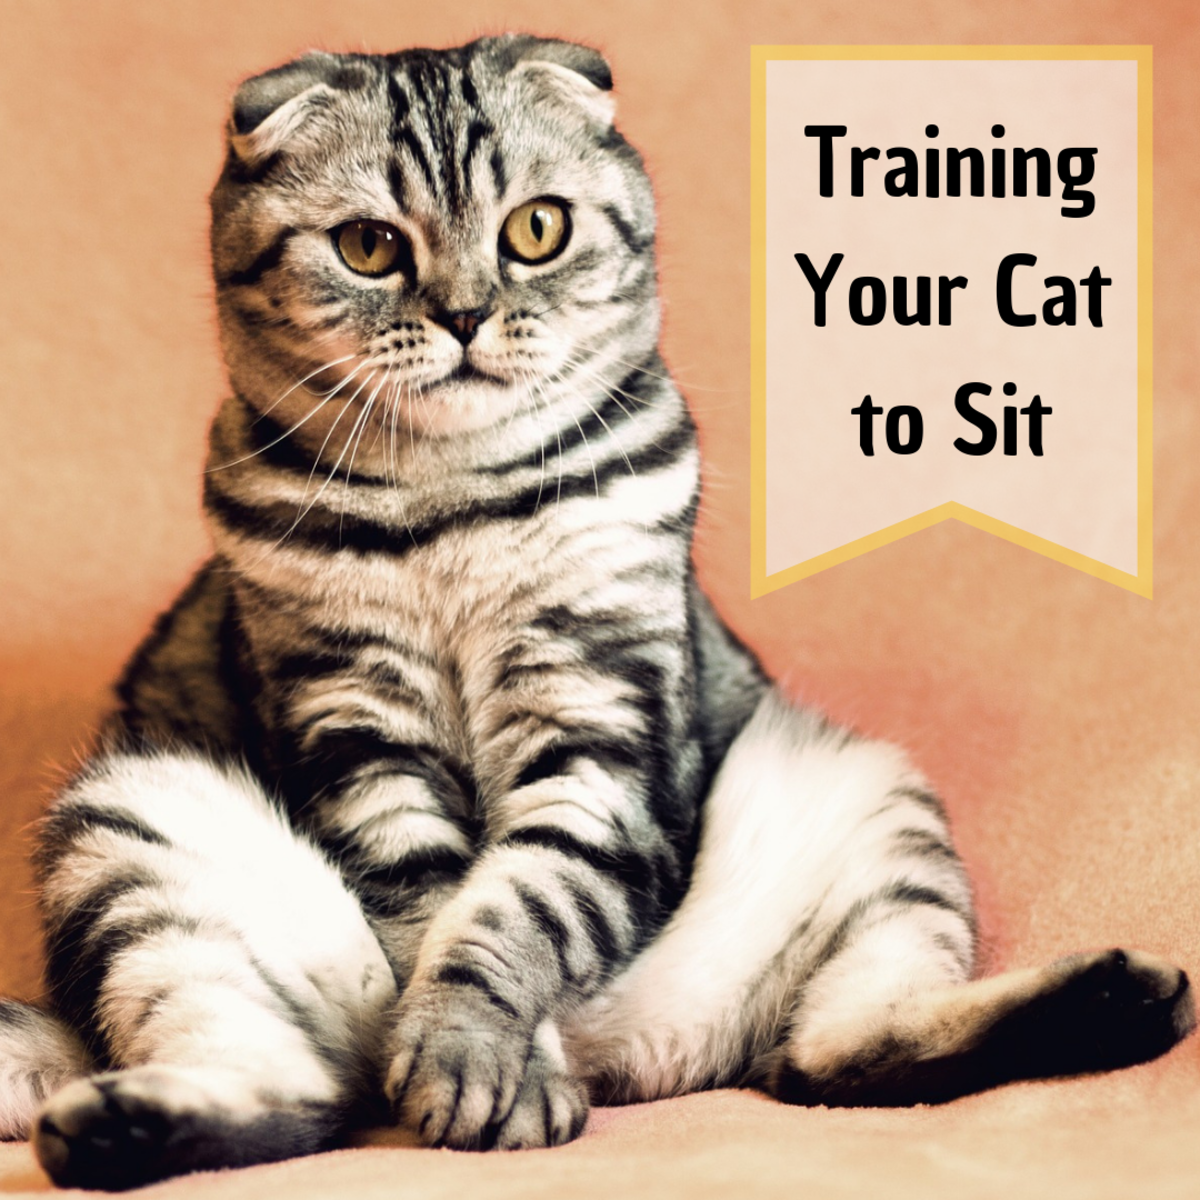 Cat Training: How to Teach Your Cat to Sit